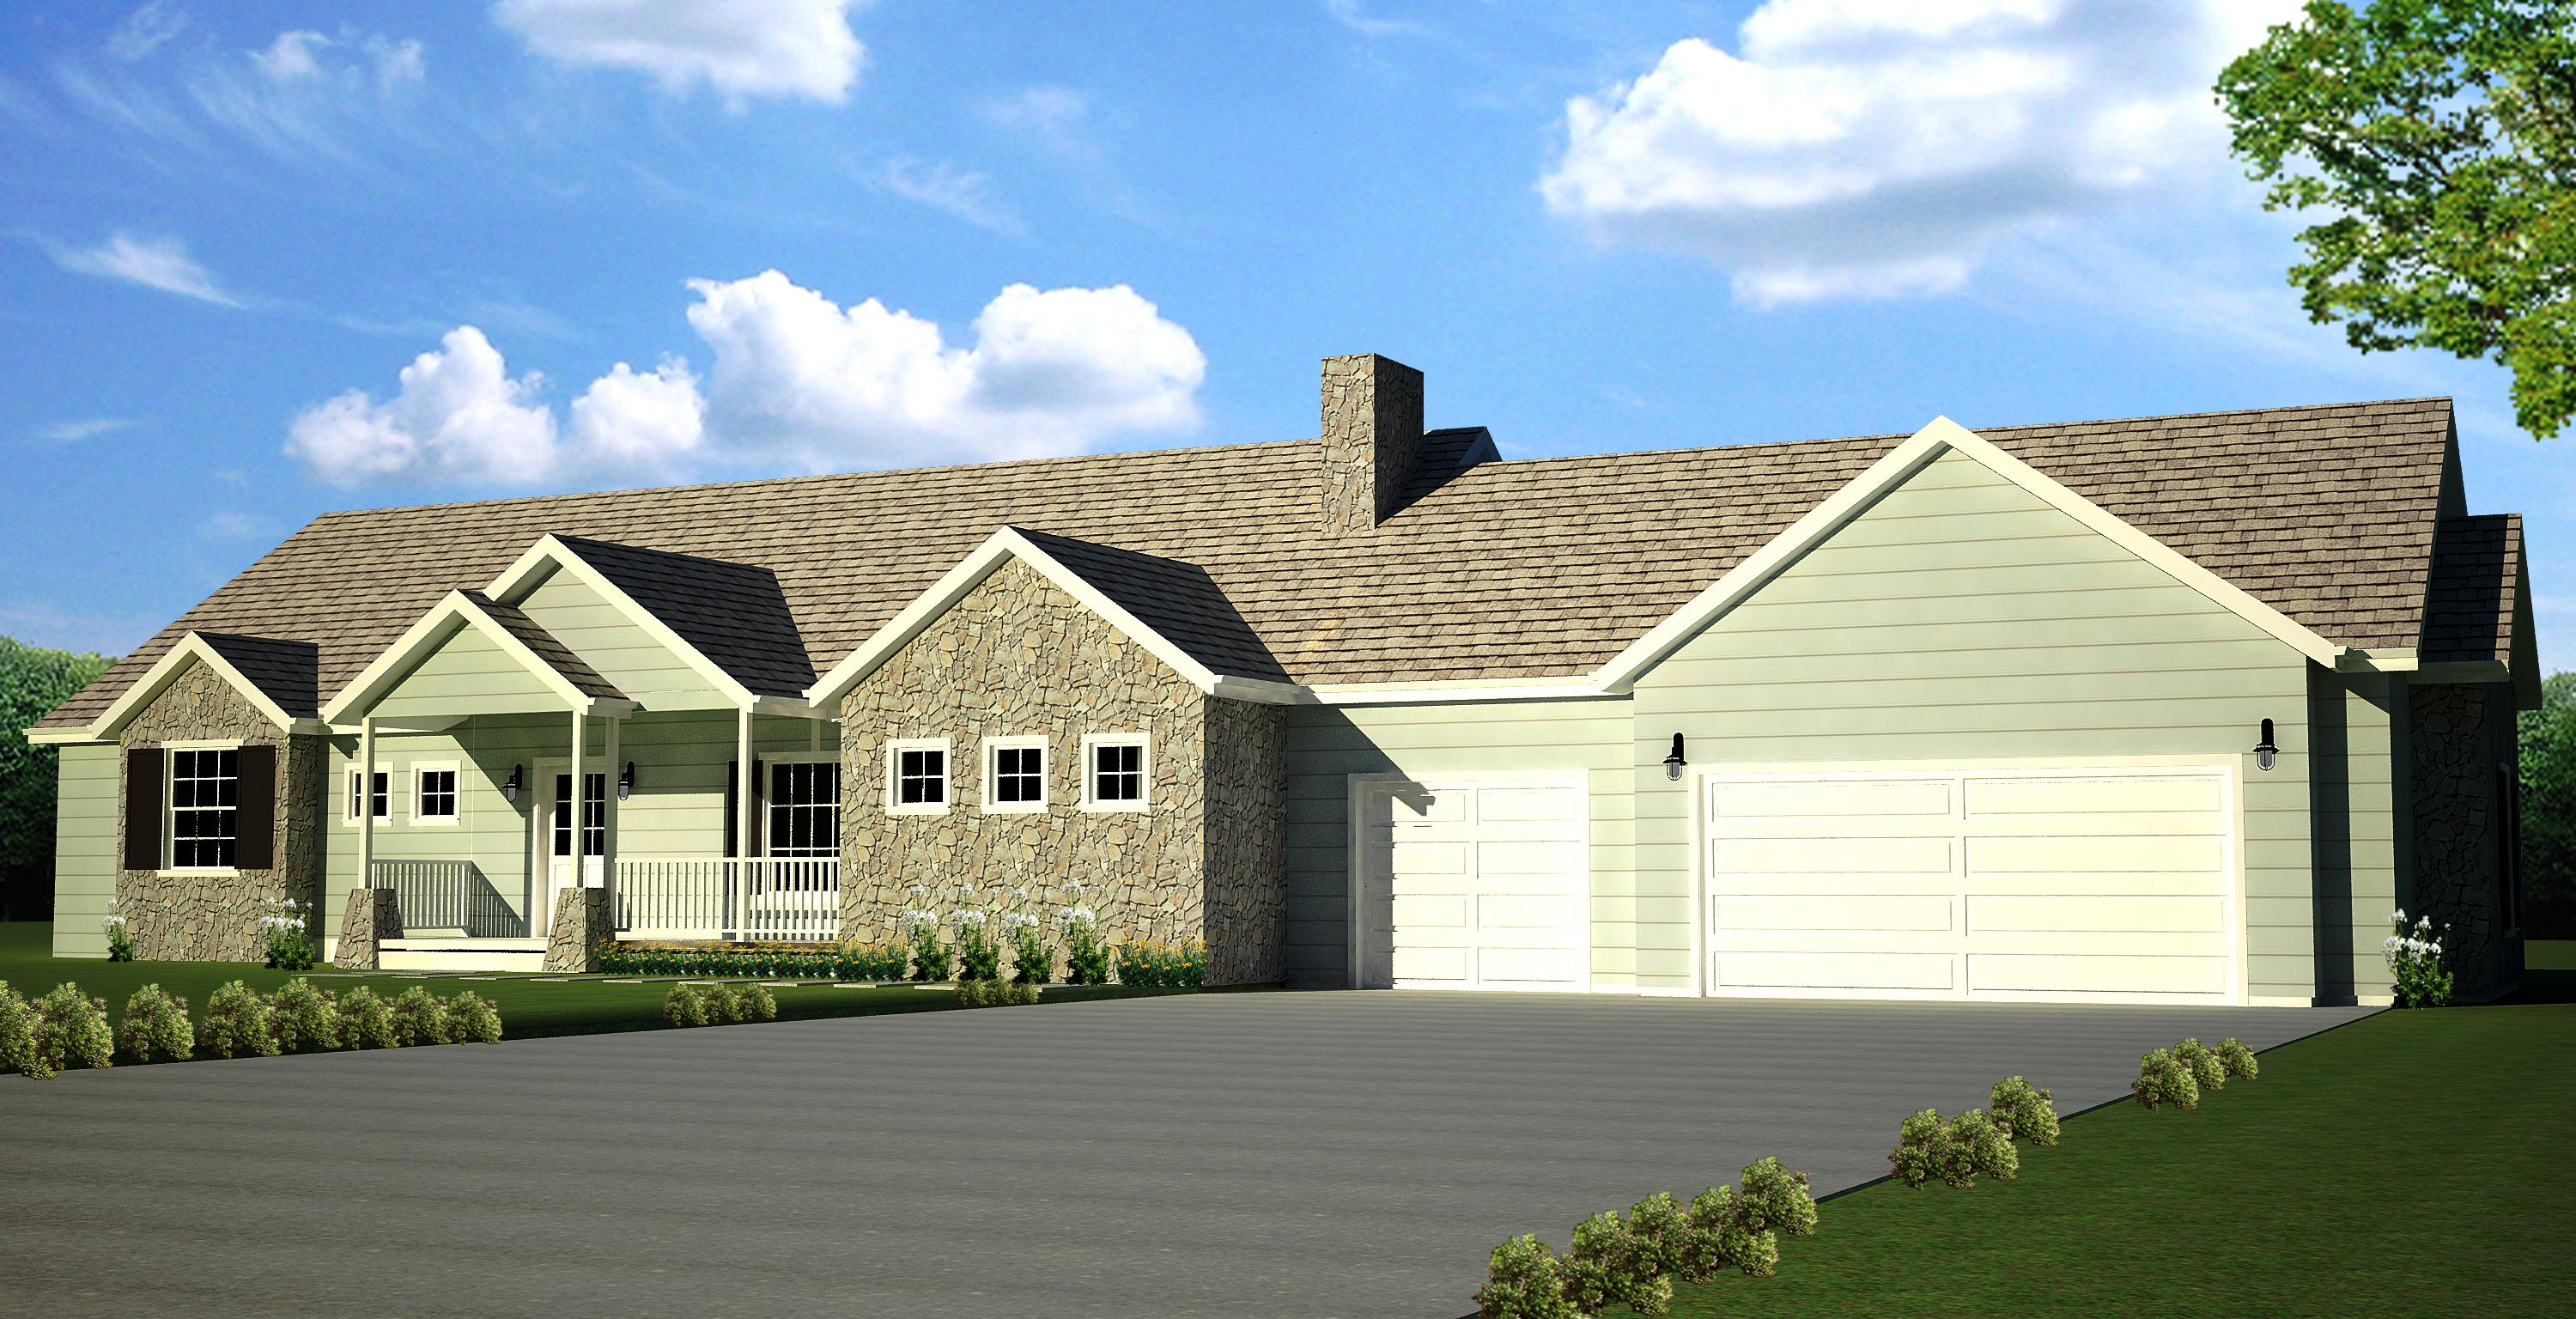 square feet of 3 car garage 2000 sq ft main 4 bedroom 3